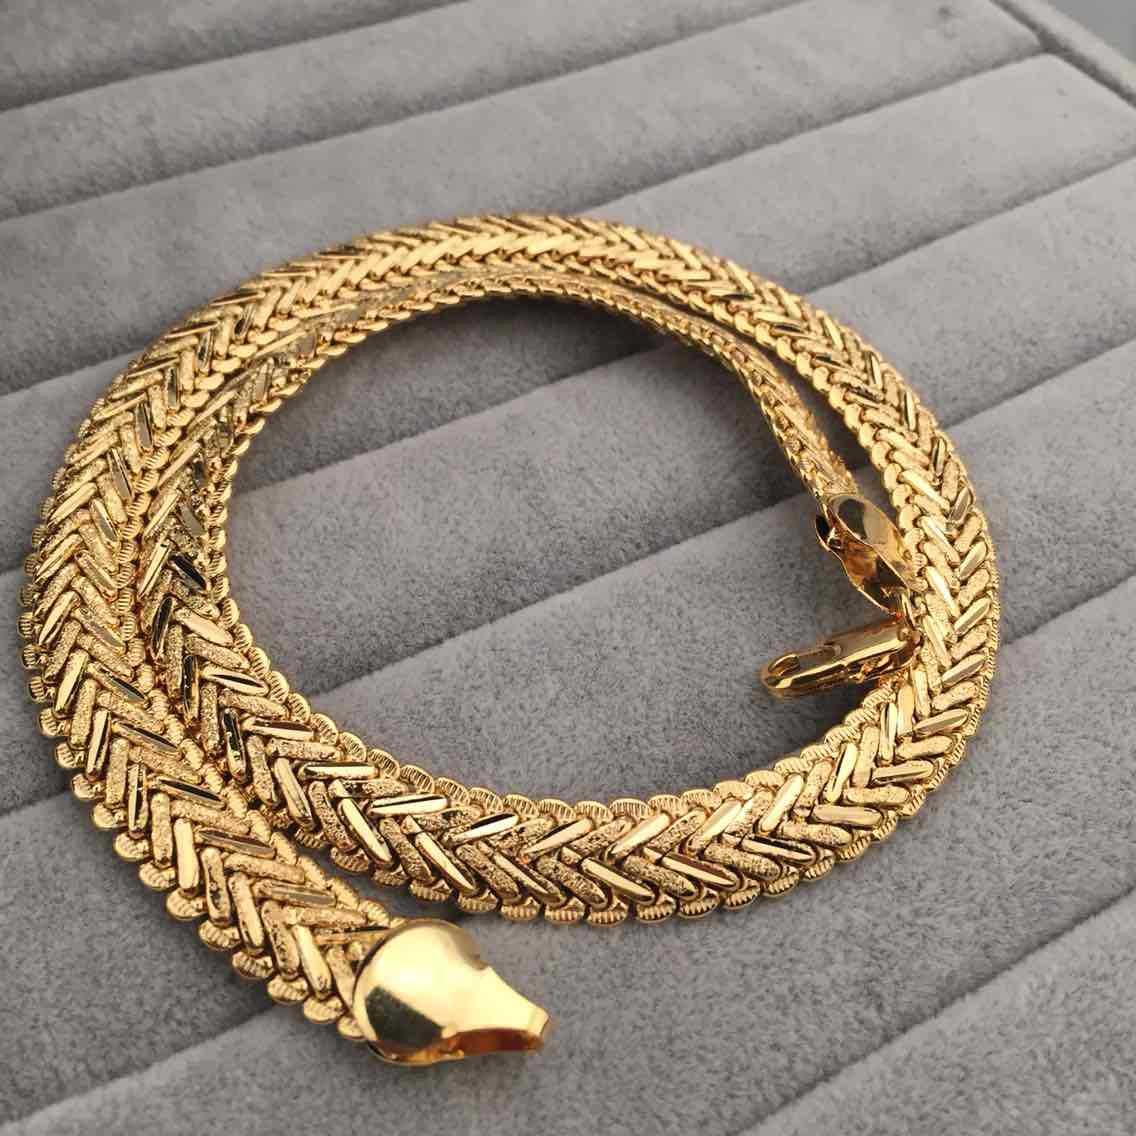 ae2eeb2bfe84b Heavy Splendid Men's Real Yellow Gold Plated Solid Snakeskin Necklace Chain  (Color:Yellow;Size:1.2cm*50cm)-in Chain Necklaces from Jewelry & ...